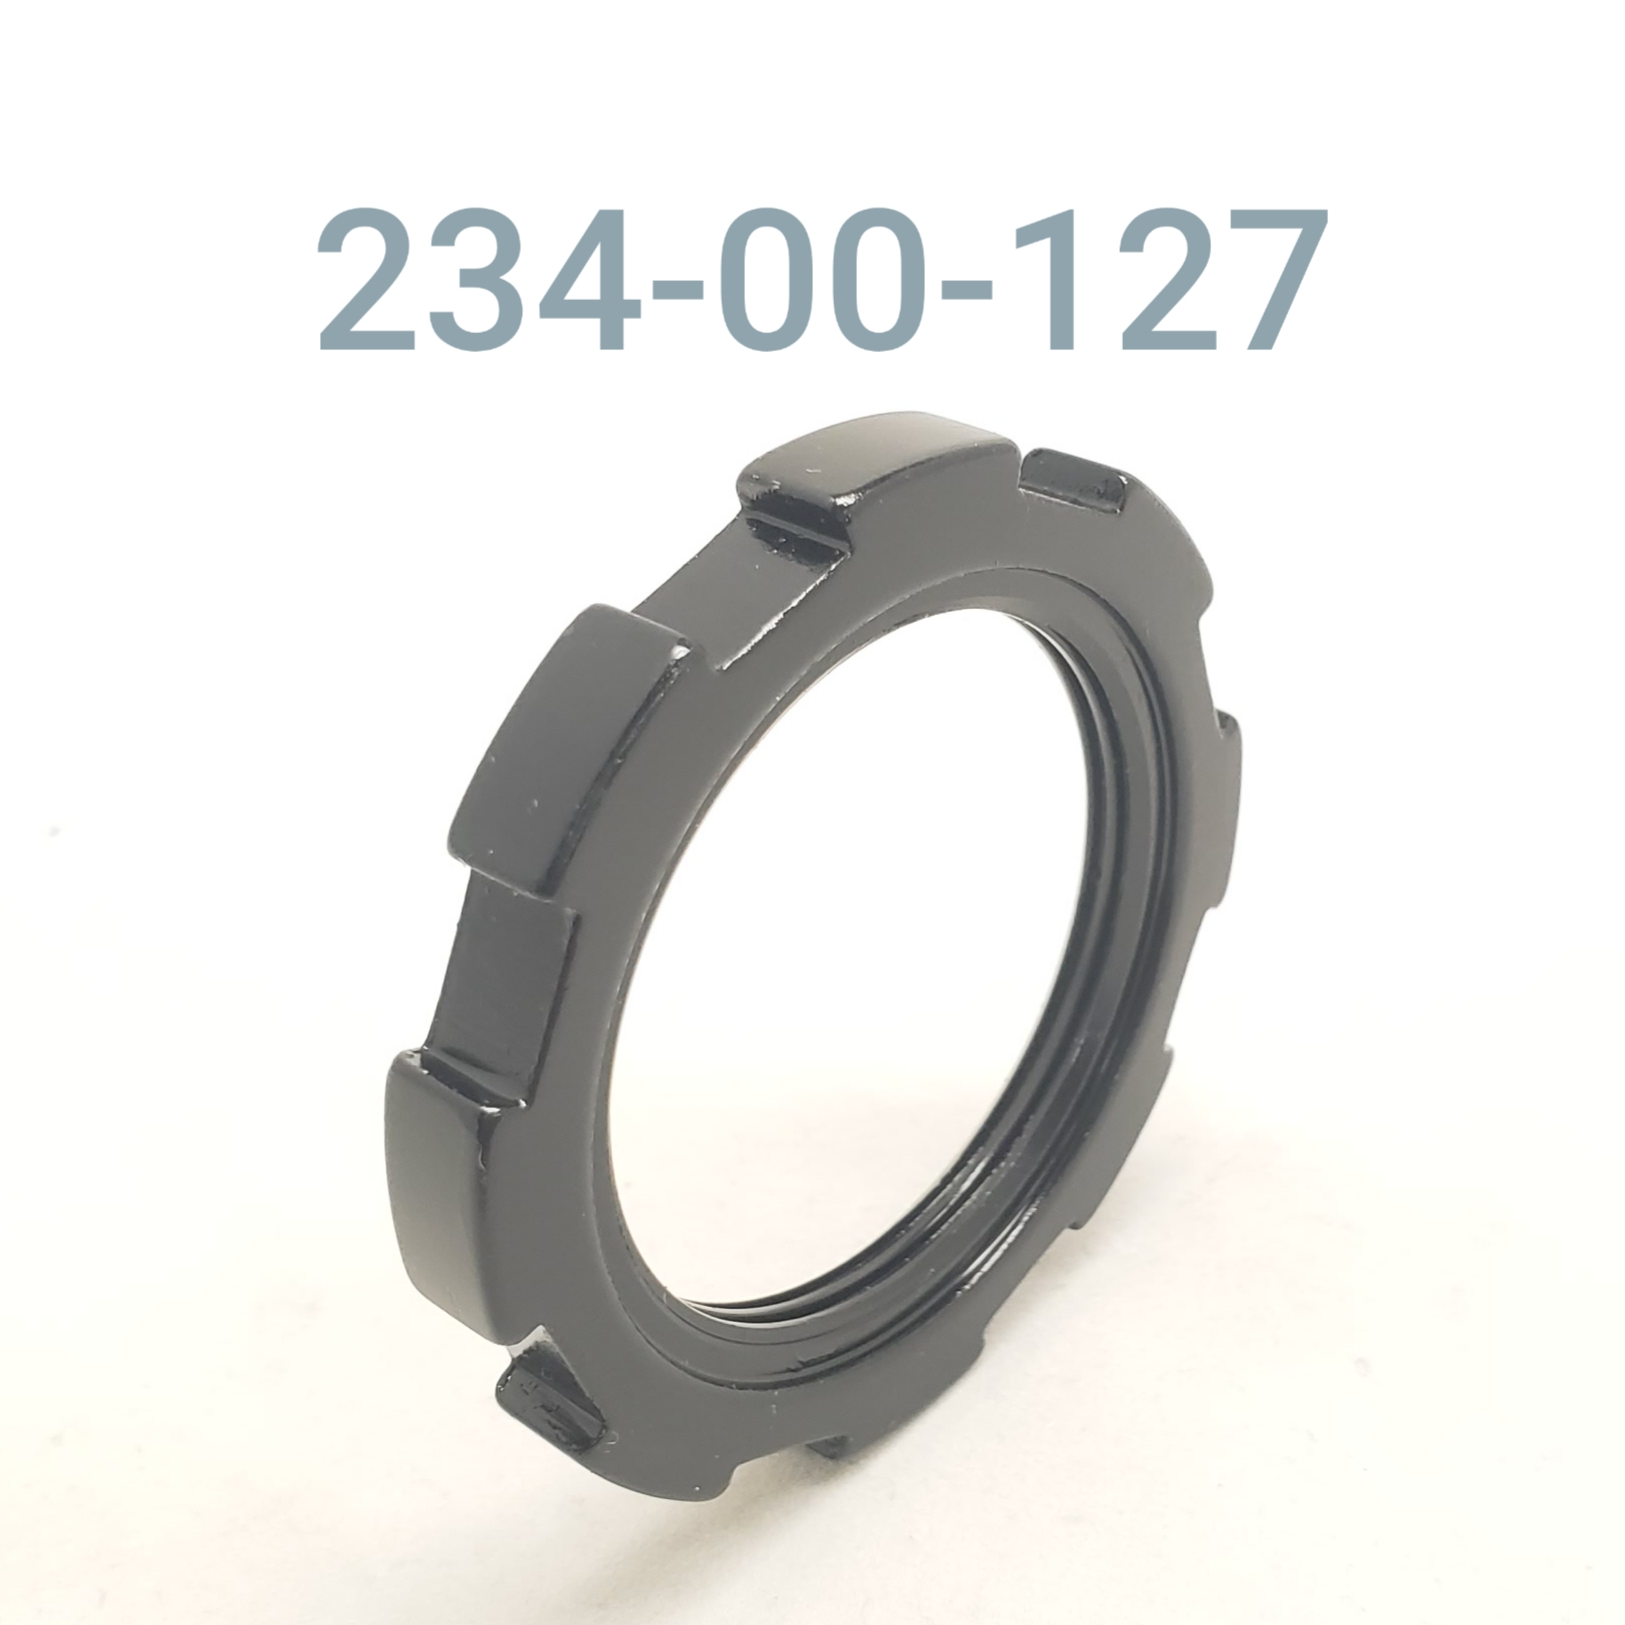 PRELOAD RING, B-U, ALUM. BODY, BLACK